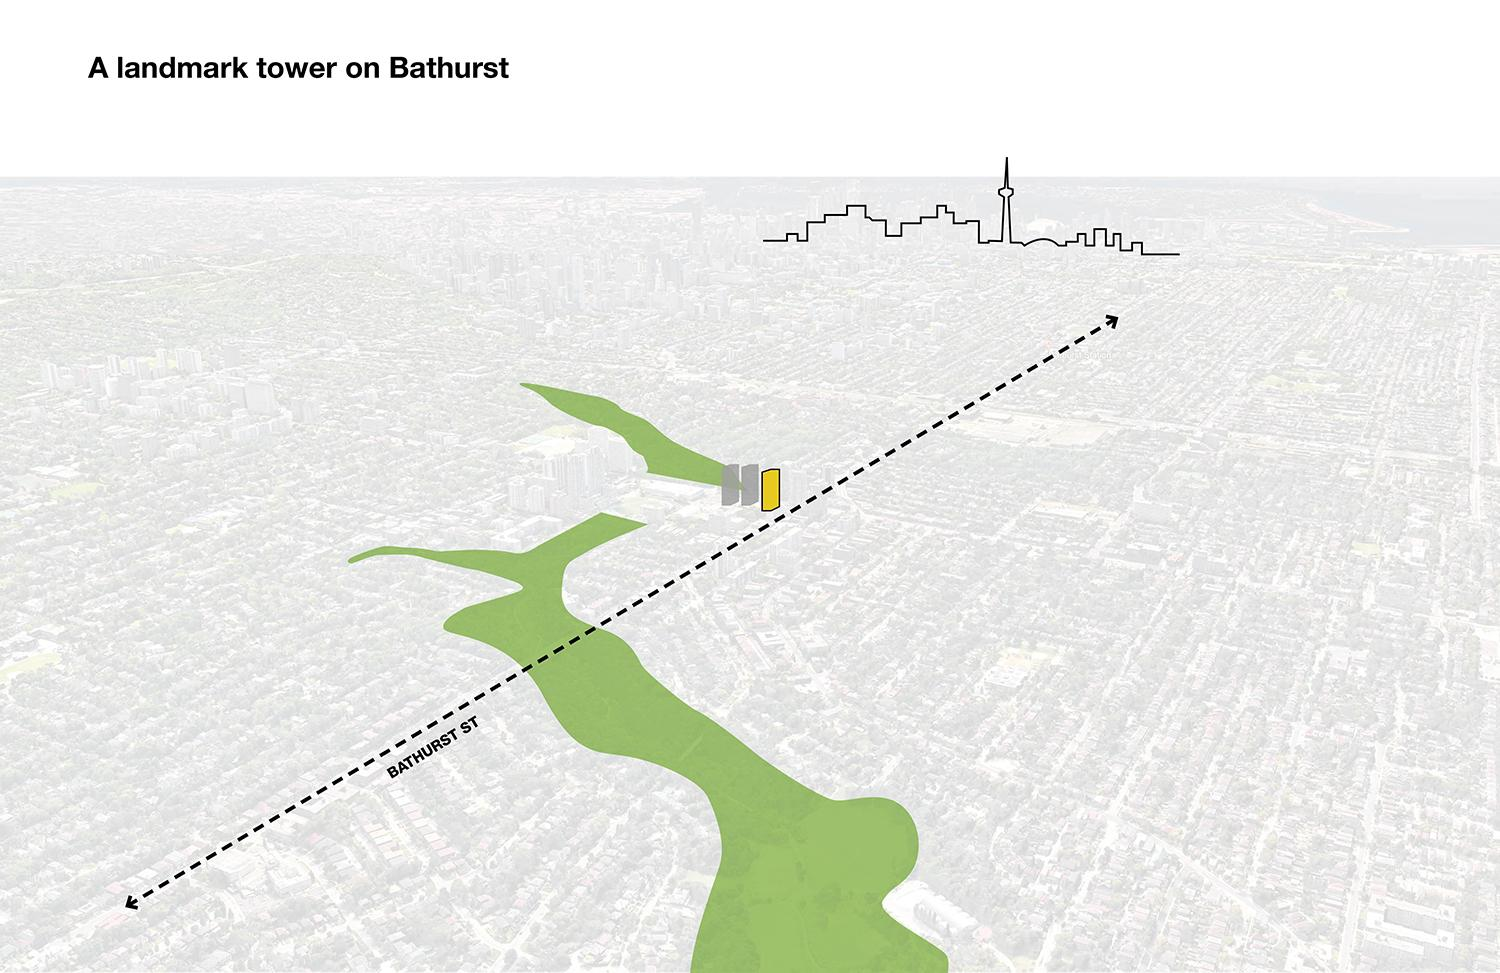 diagram showing how the towers will stand out as a landmark along the skyline compared to the height of the surrounding buildings along Bathurst street